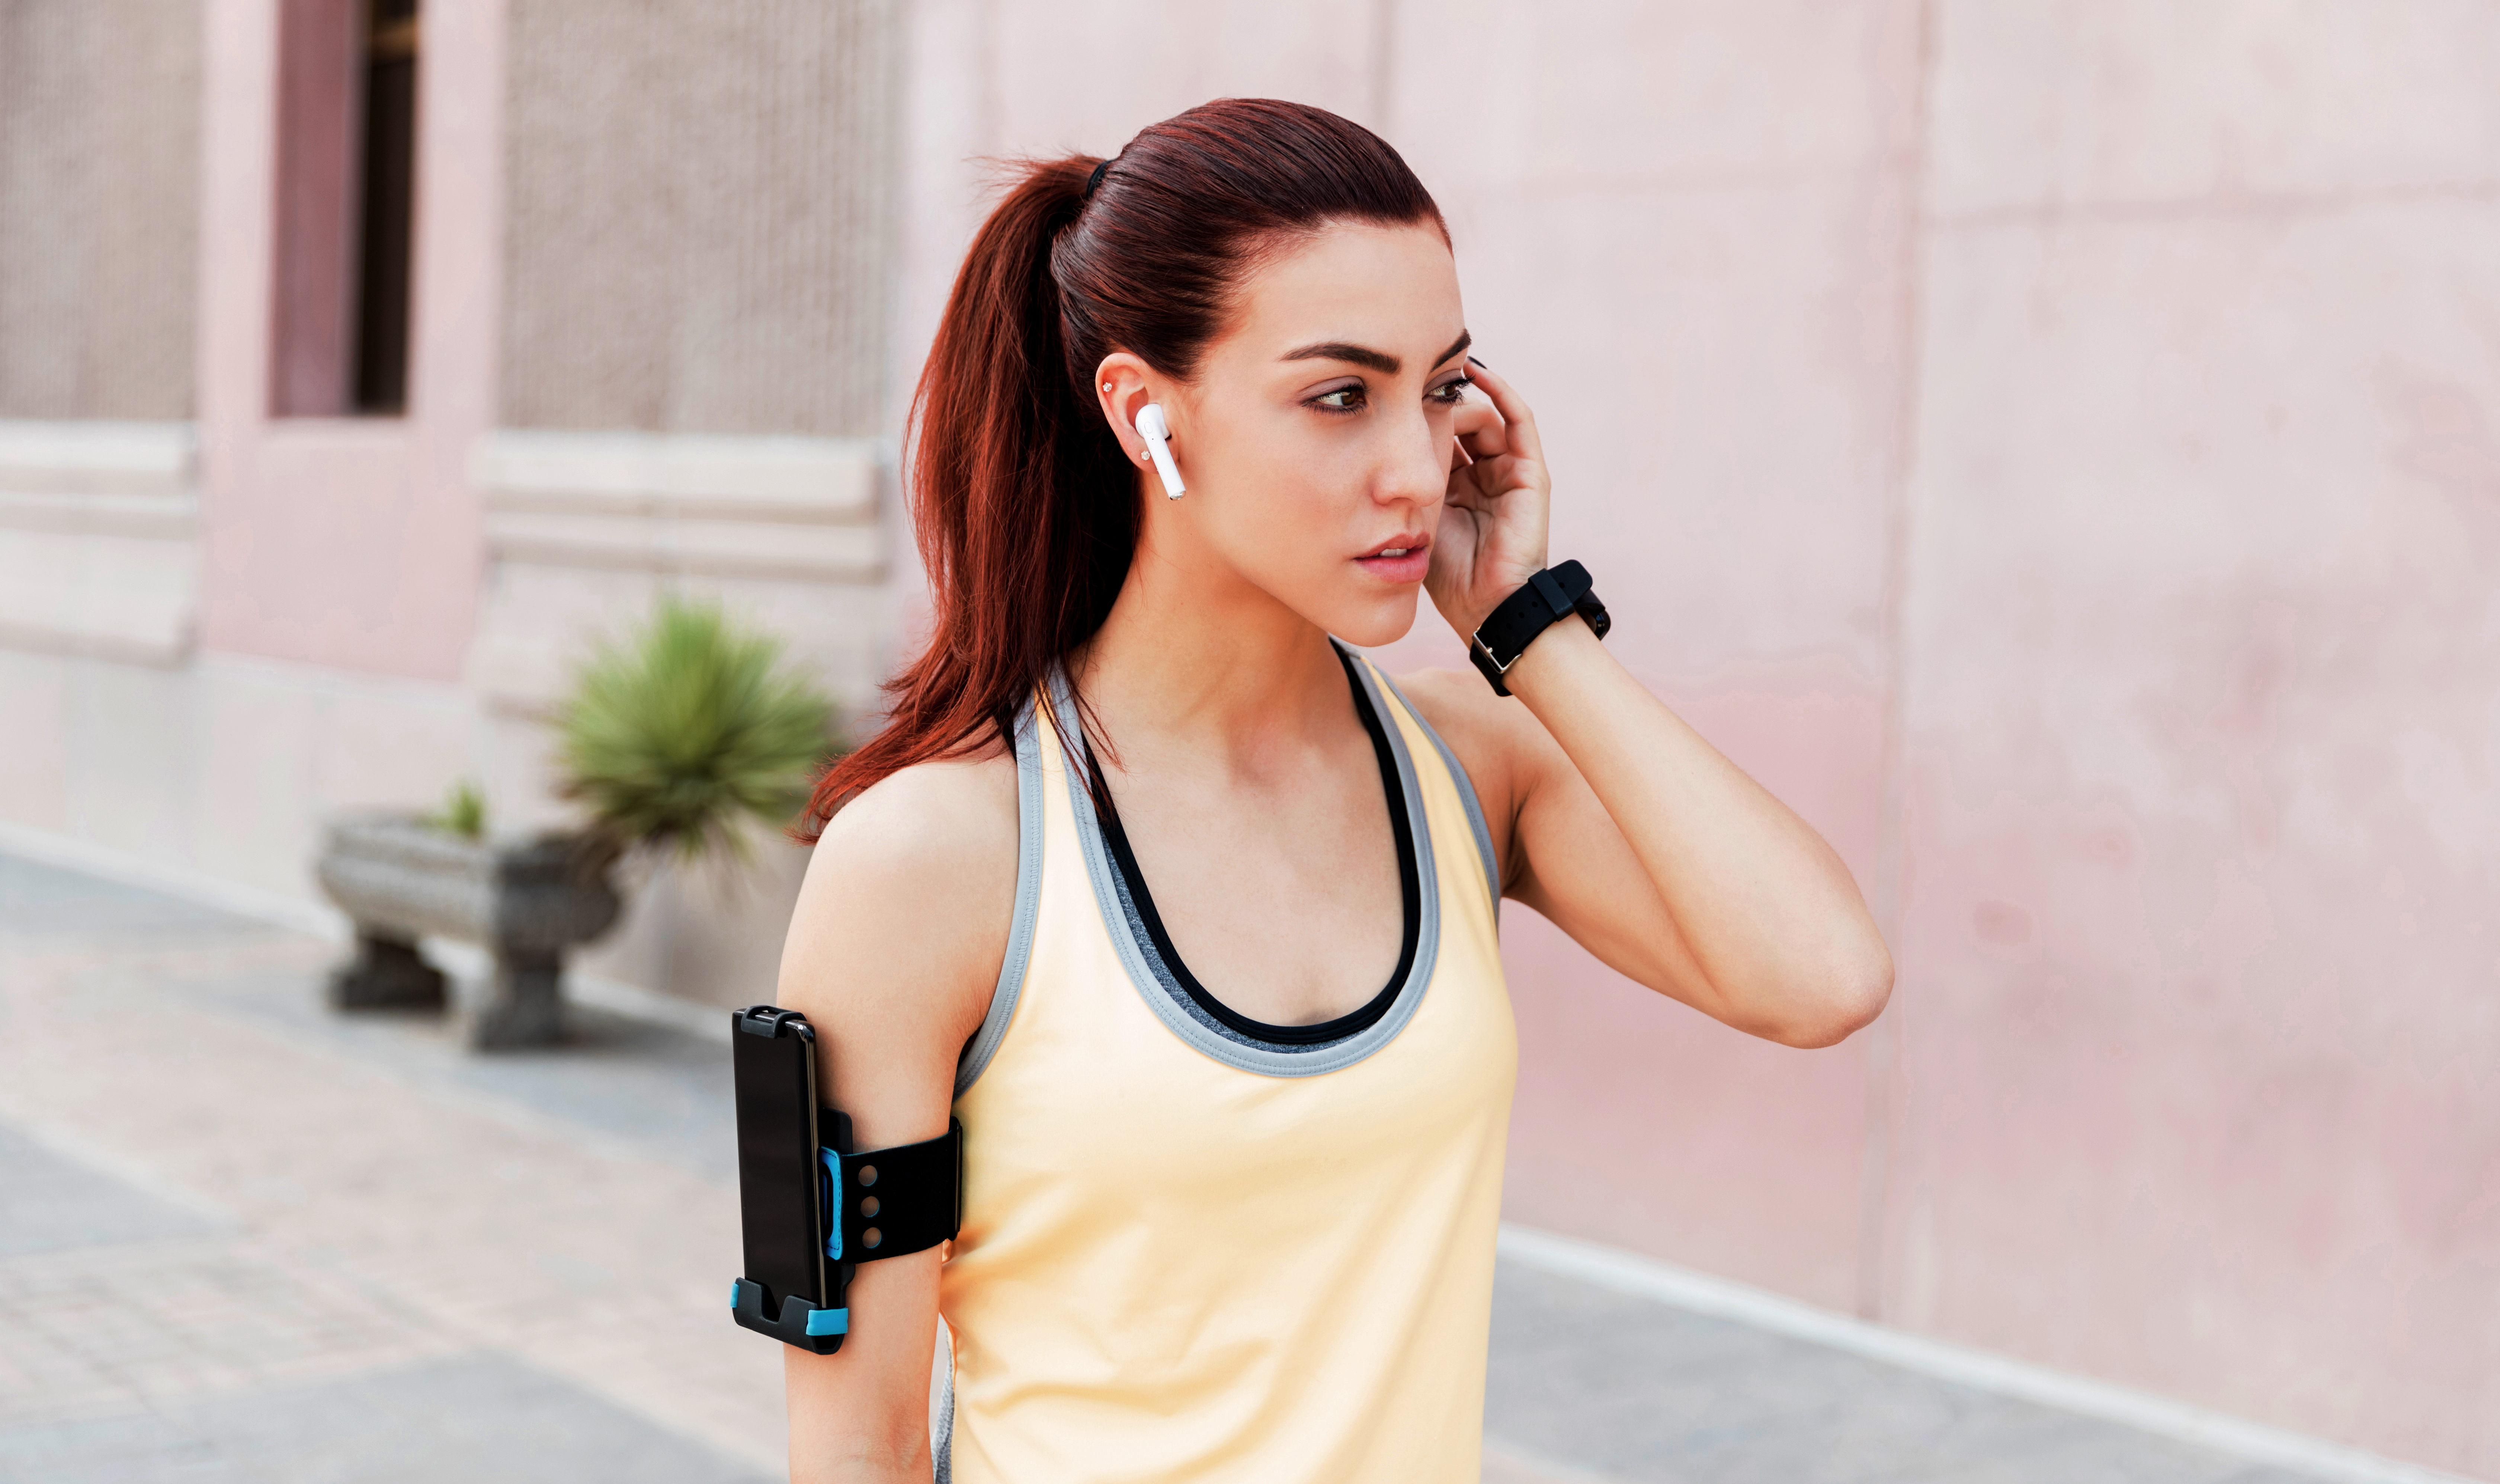 The Best Workout Headphones And Earbuds According To Fitness Pros